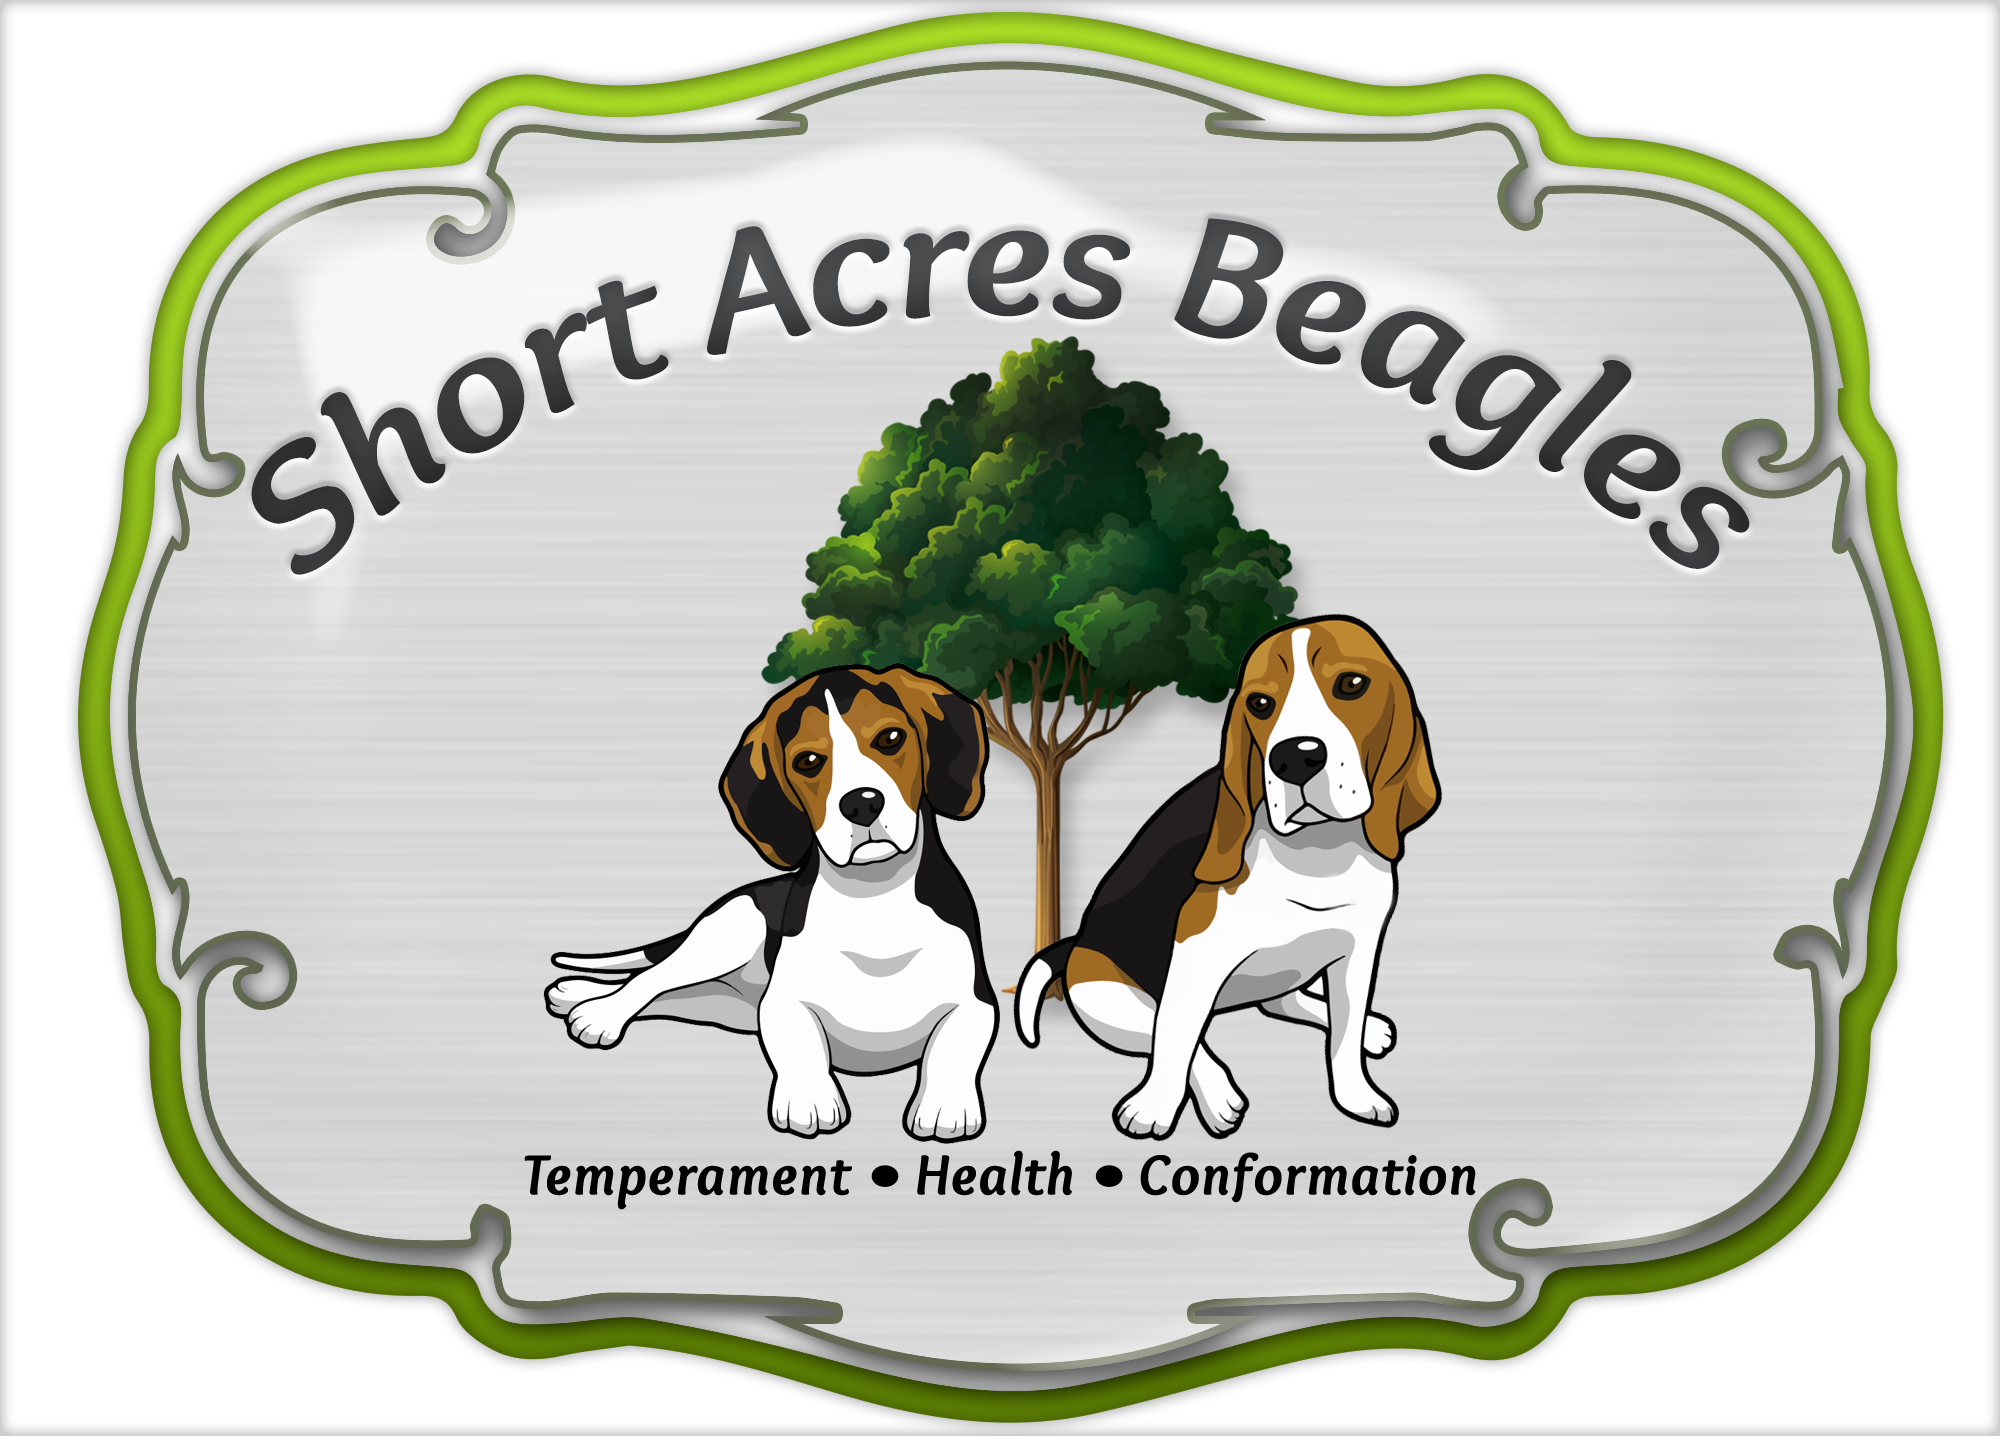 Short Acres Beagles Beagle Breeder In South Carolina